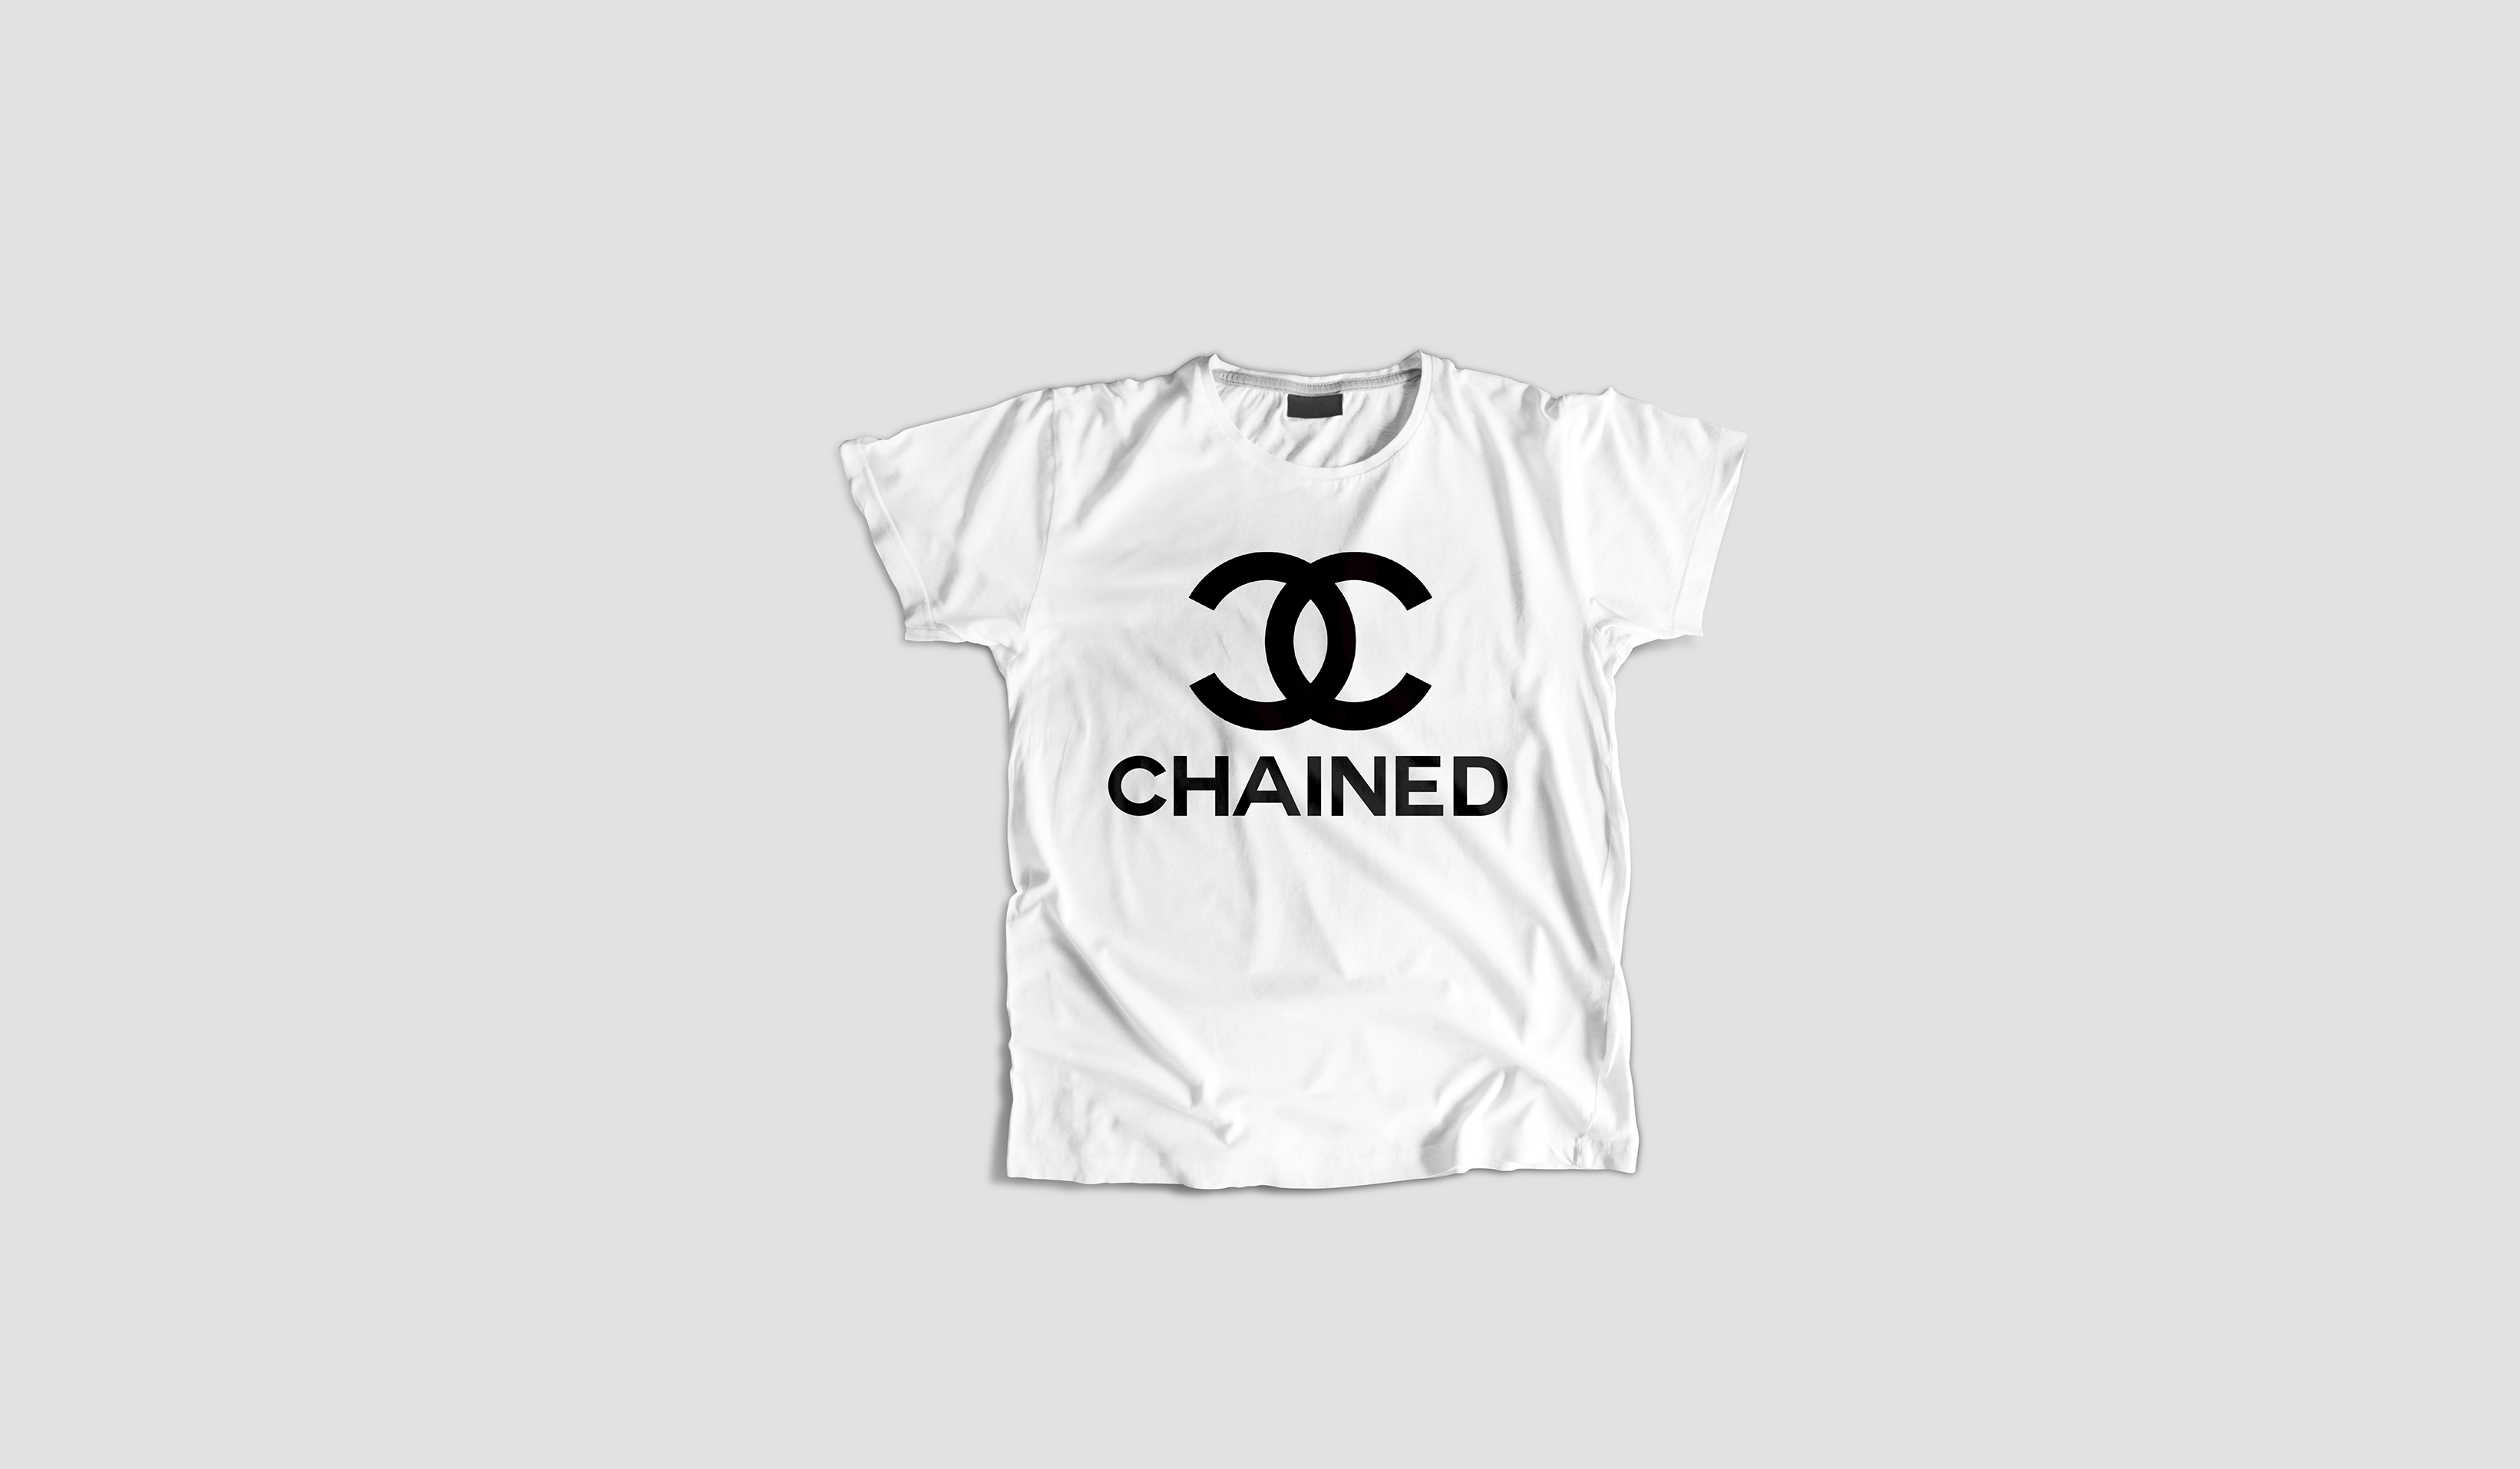 01 chained